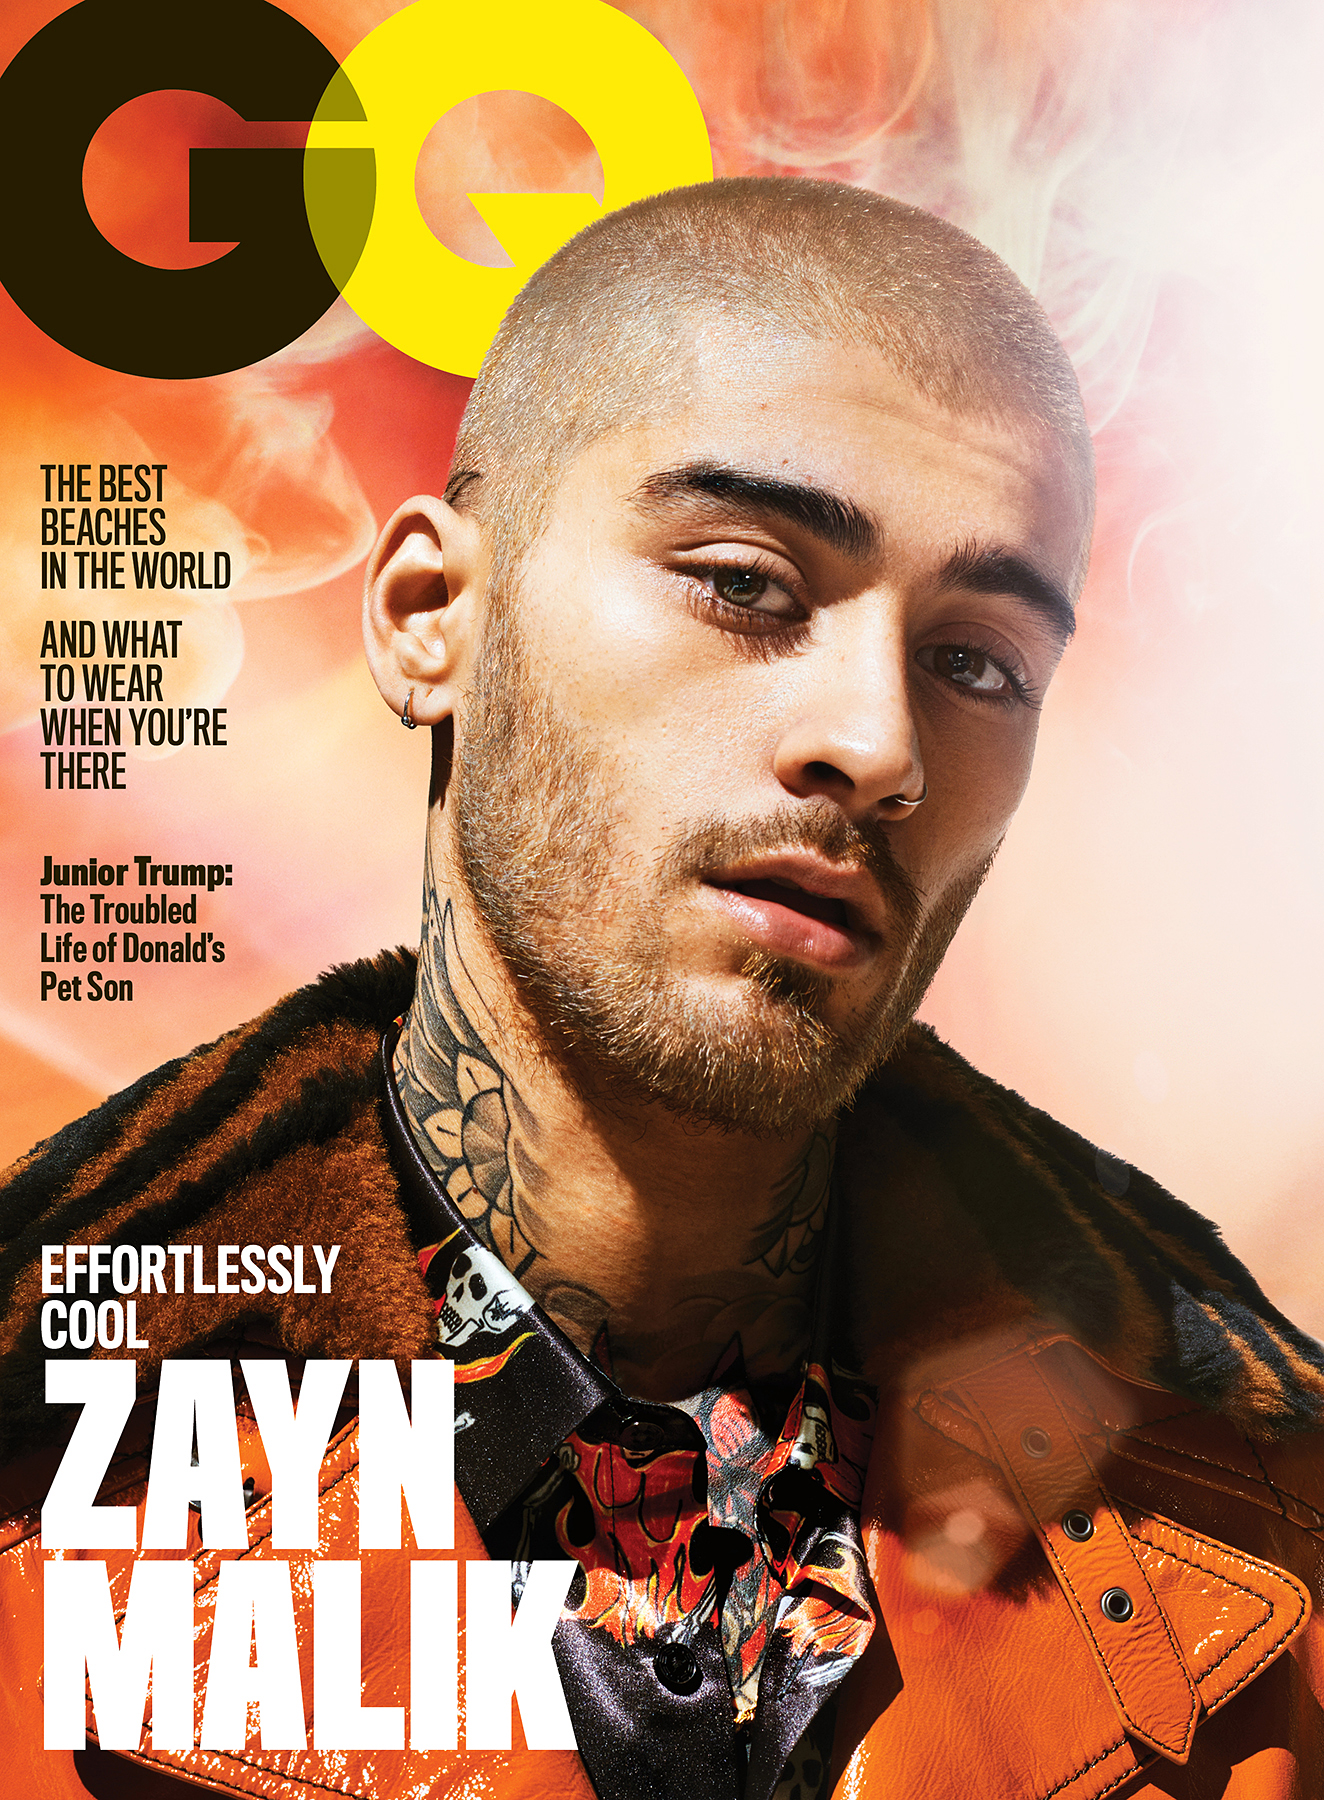 Zayn Malik GQ Gigi Hadid Relationship No Label